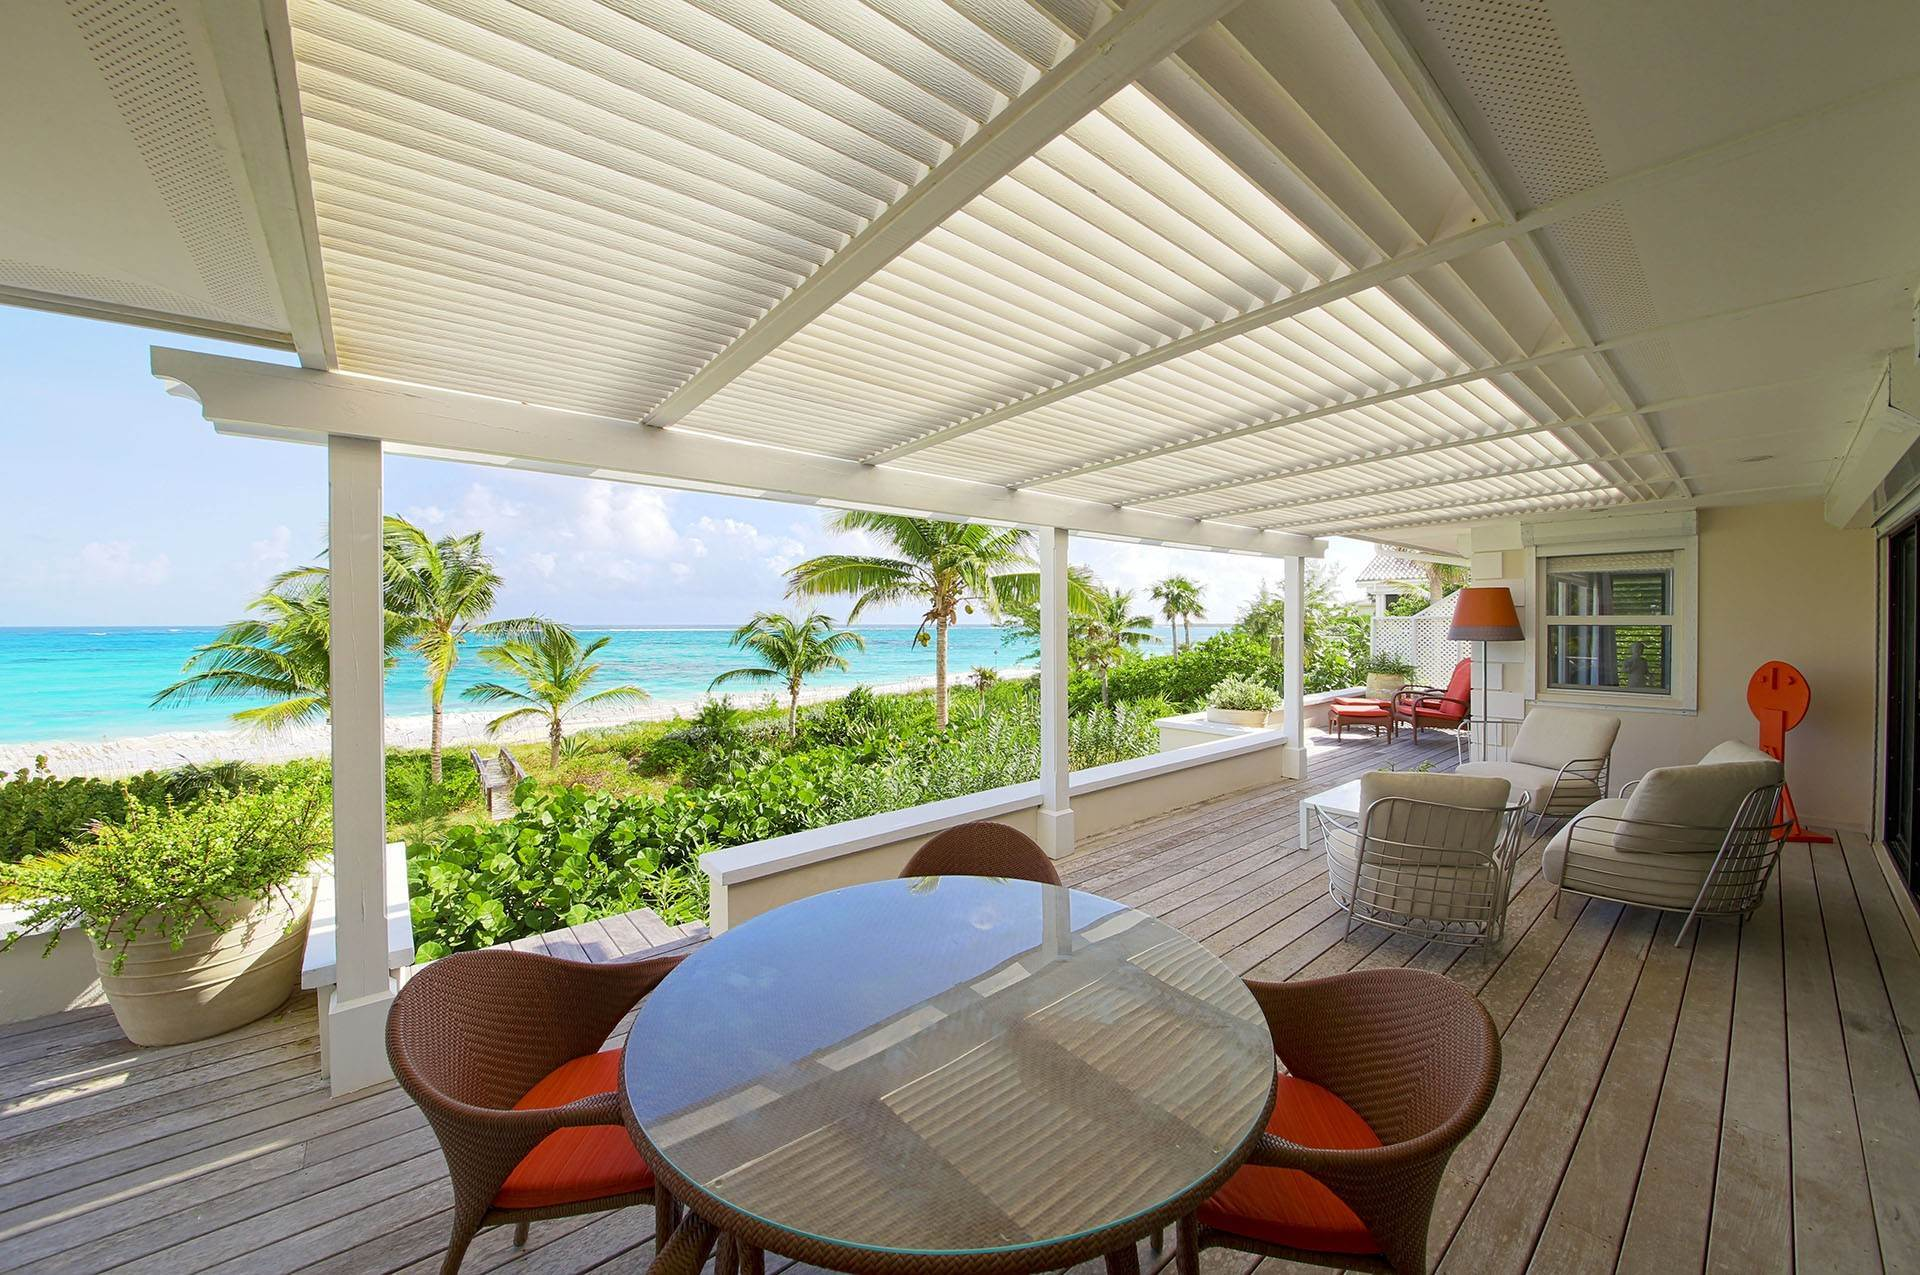 Single Family Homes for Sale at Brambles, Double Bay, Eleuthera - MLS 42946 Double Bay, Eleuthera, Bahamas